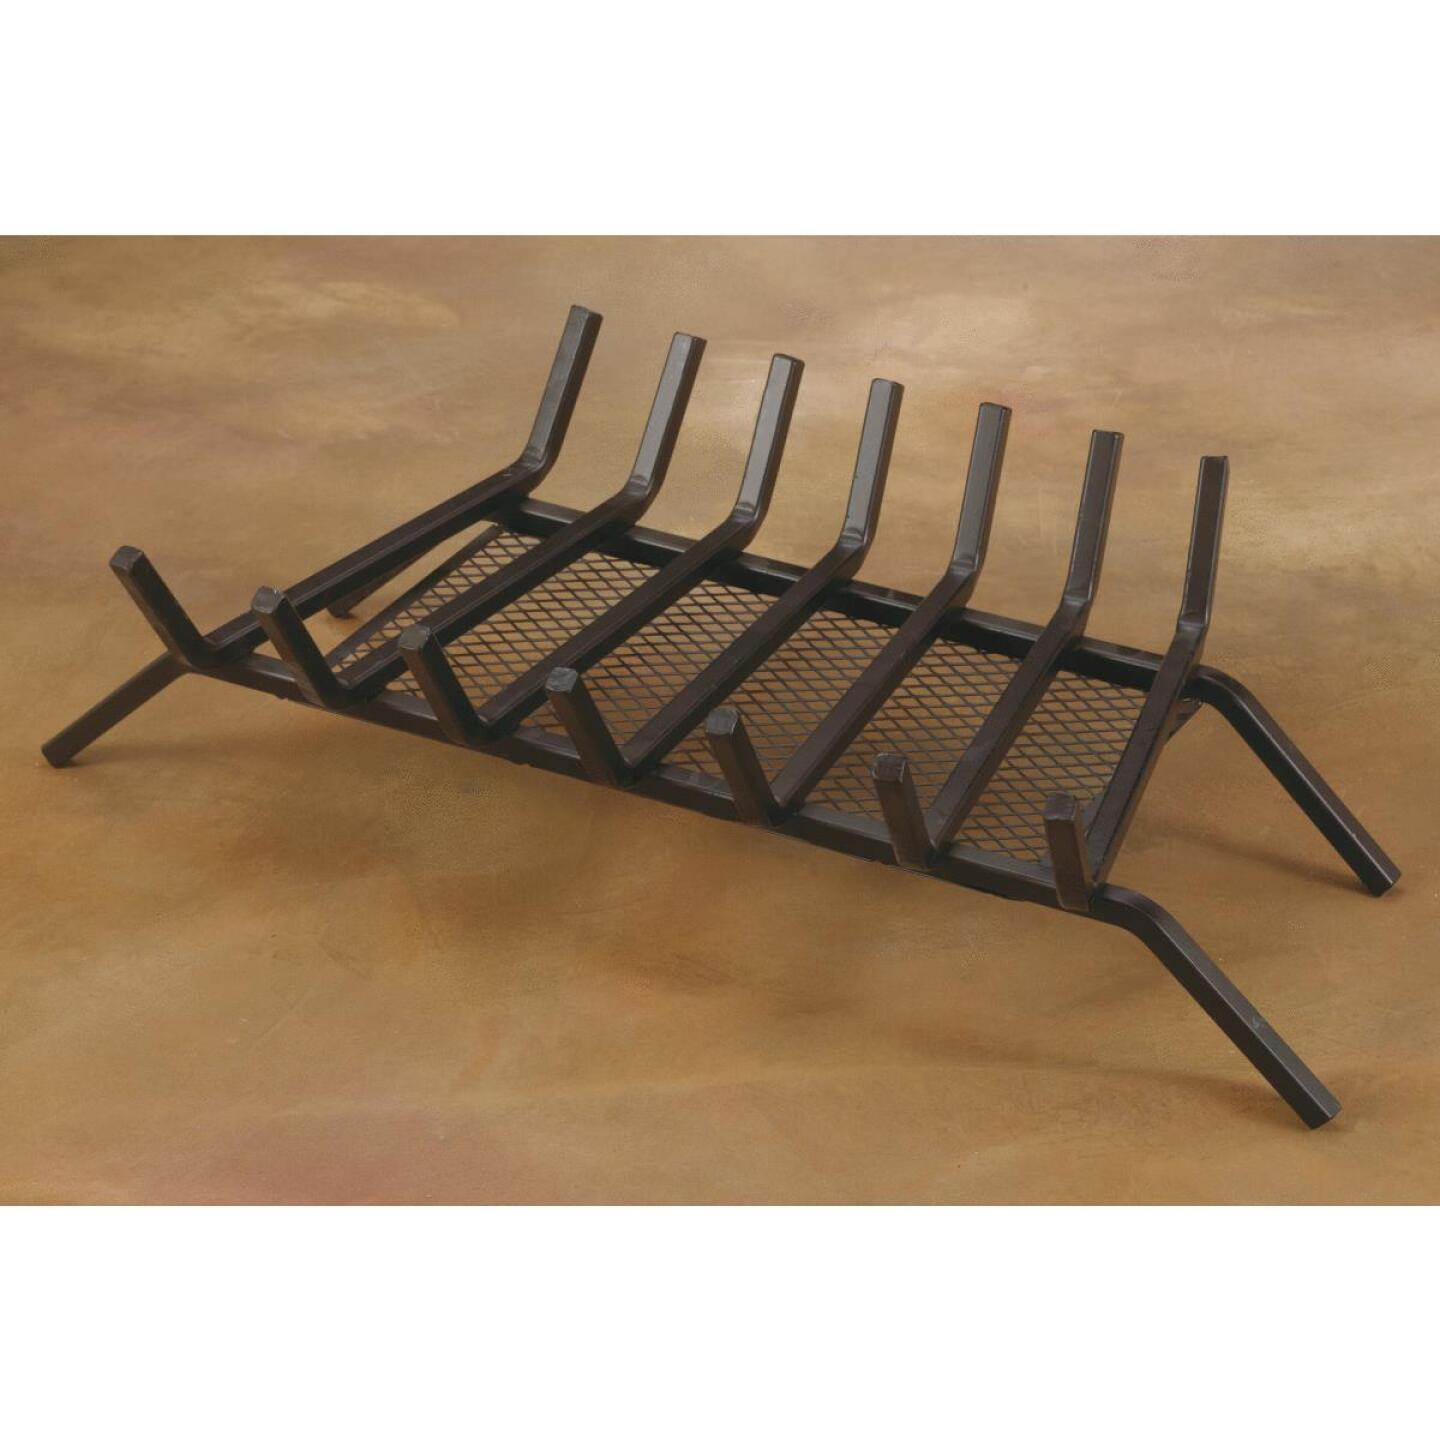 Home Impressions 30 In. Steel Fireplace Grate with Ember Screen Image 3